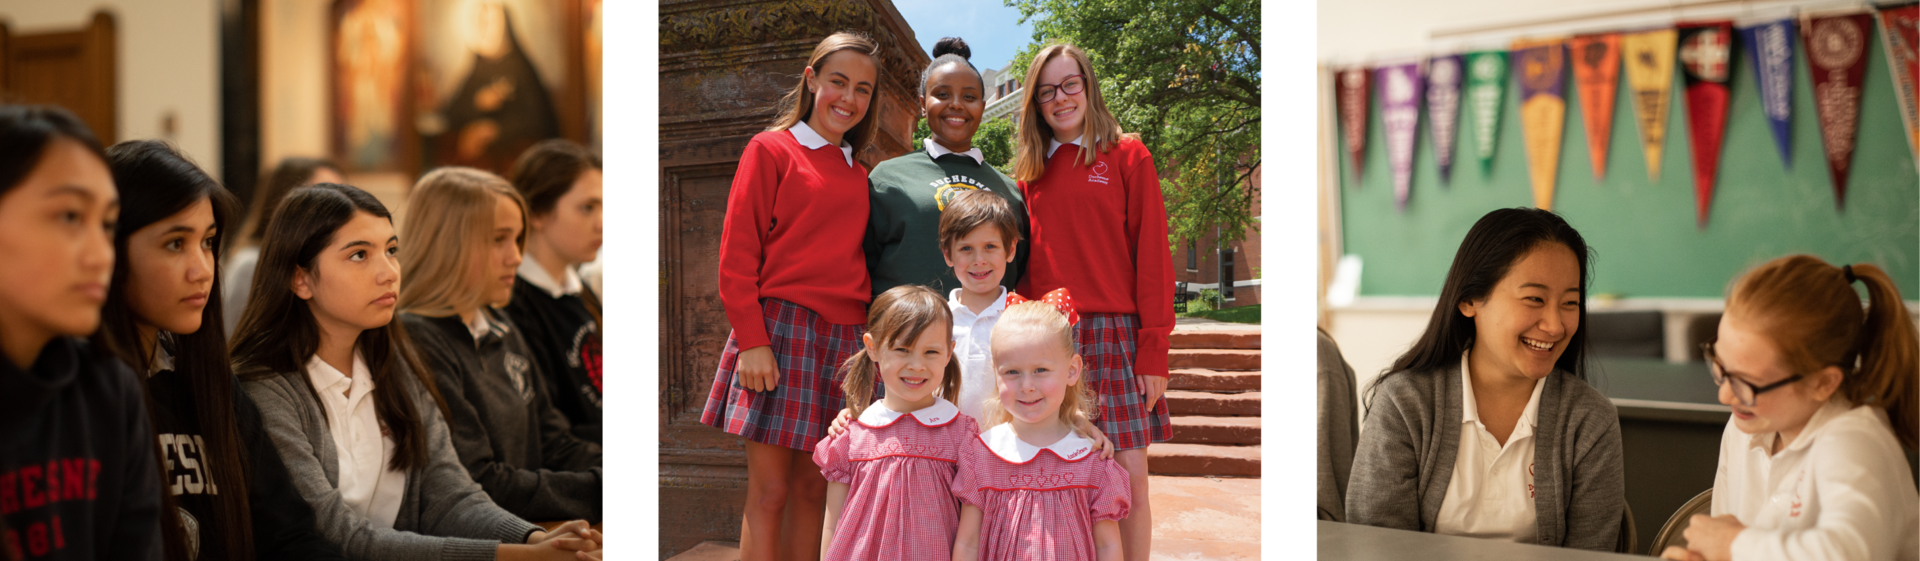 Duchesne Academy and Preschool Students